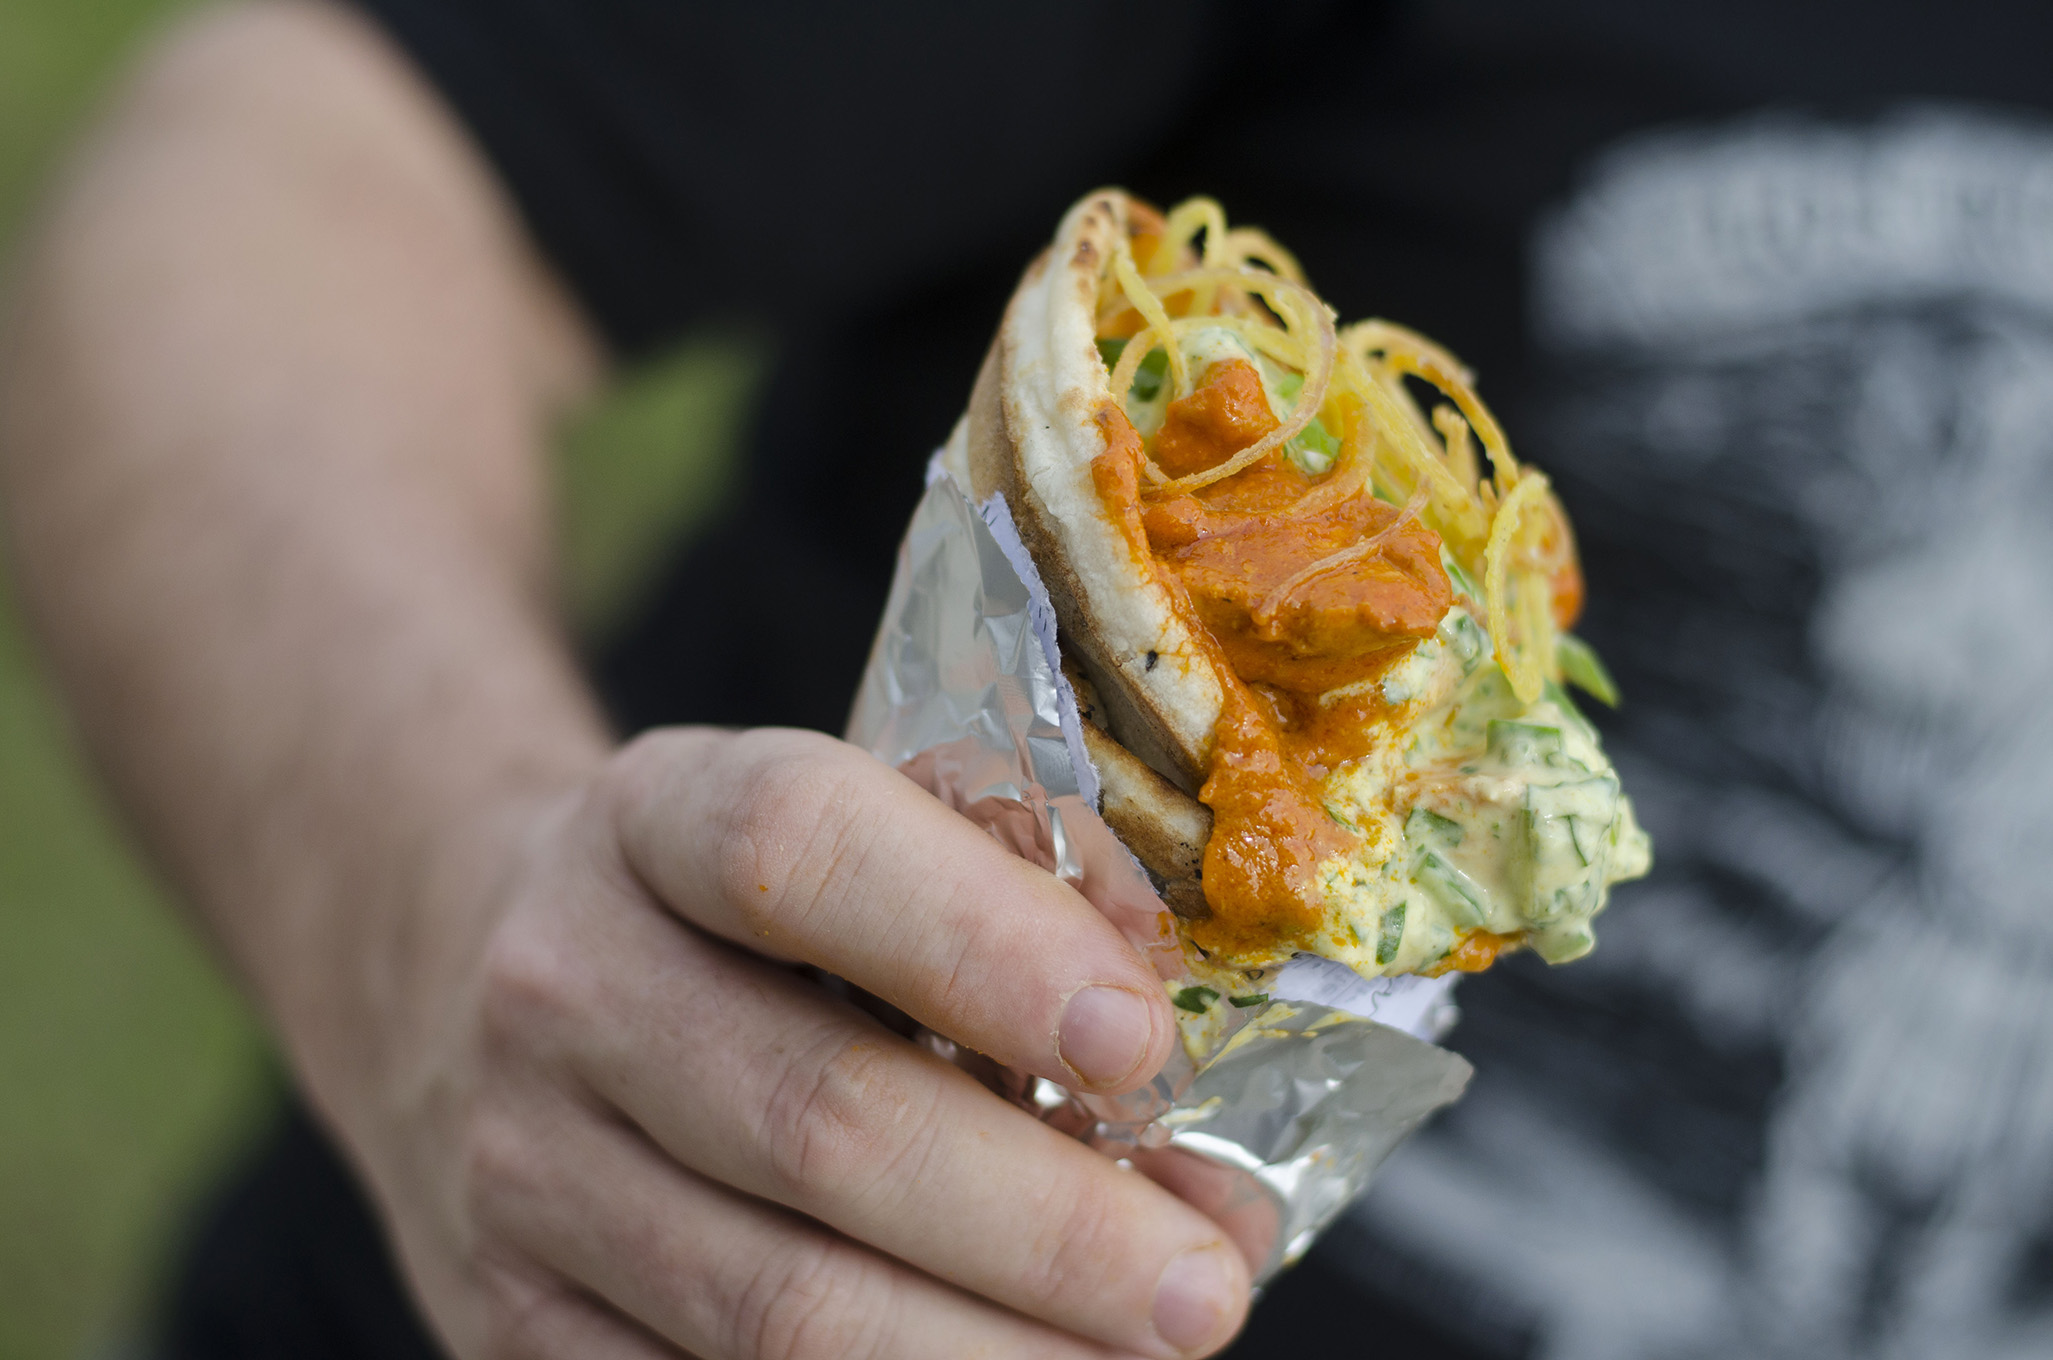 Butter Chicken Cone from WindsorEats at the Street Food Fare in Windsor, Ontario.